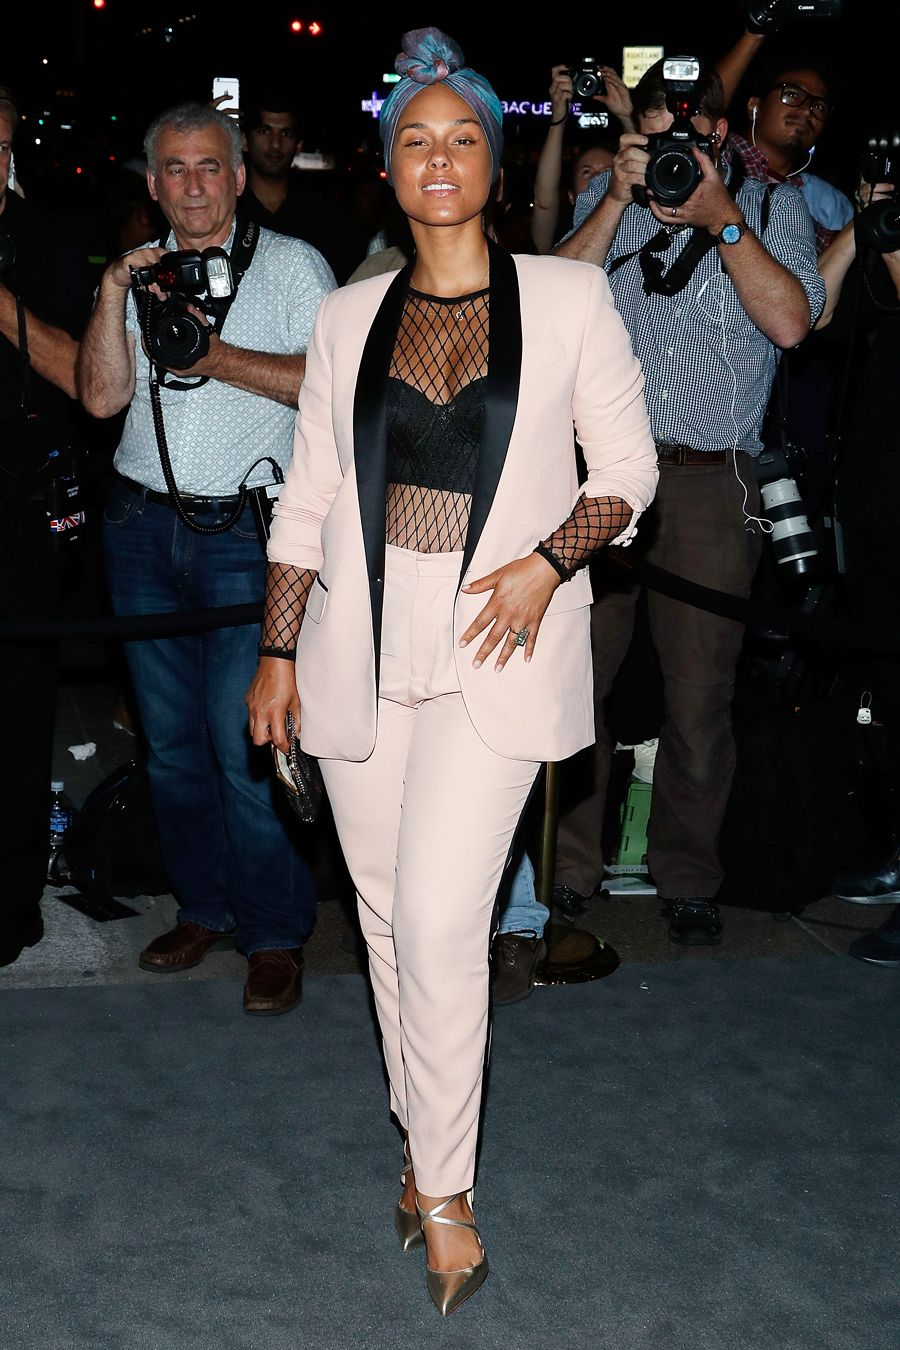 Birthday Girl Alicia Keys S Most Glamorous Makeup Free Moments Pretty In Pink From Instyle Com Fashion Top Outfits Alicia Keys Style